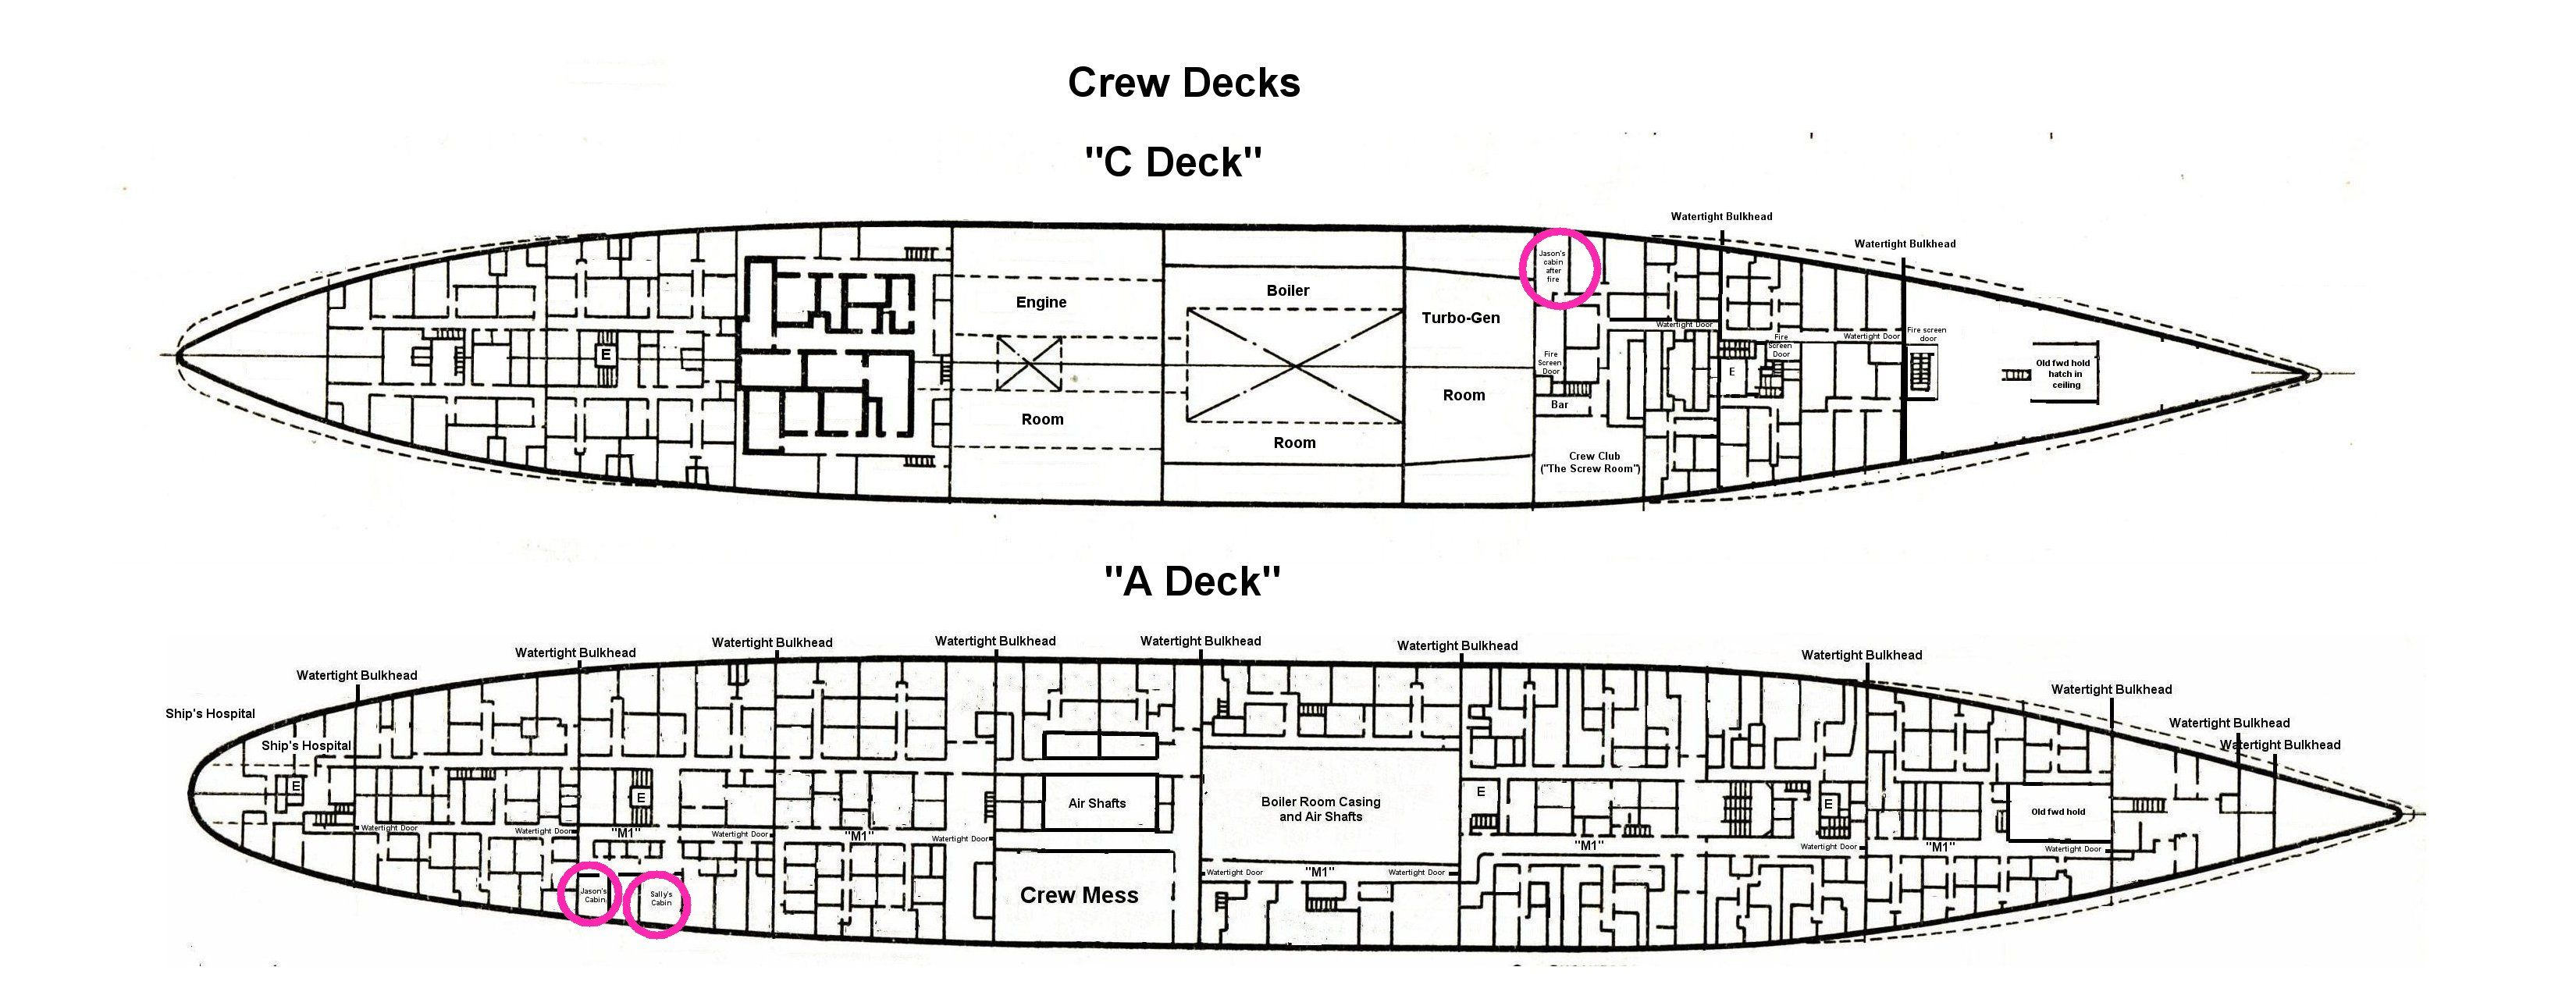 Deck plans star sapphire crew decks a and c b deck is not shown click here to open the pdf file very large baanklon Images